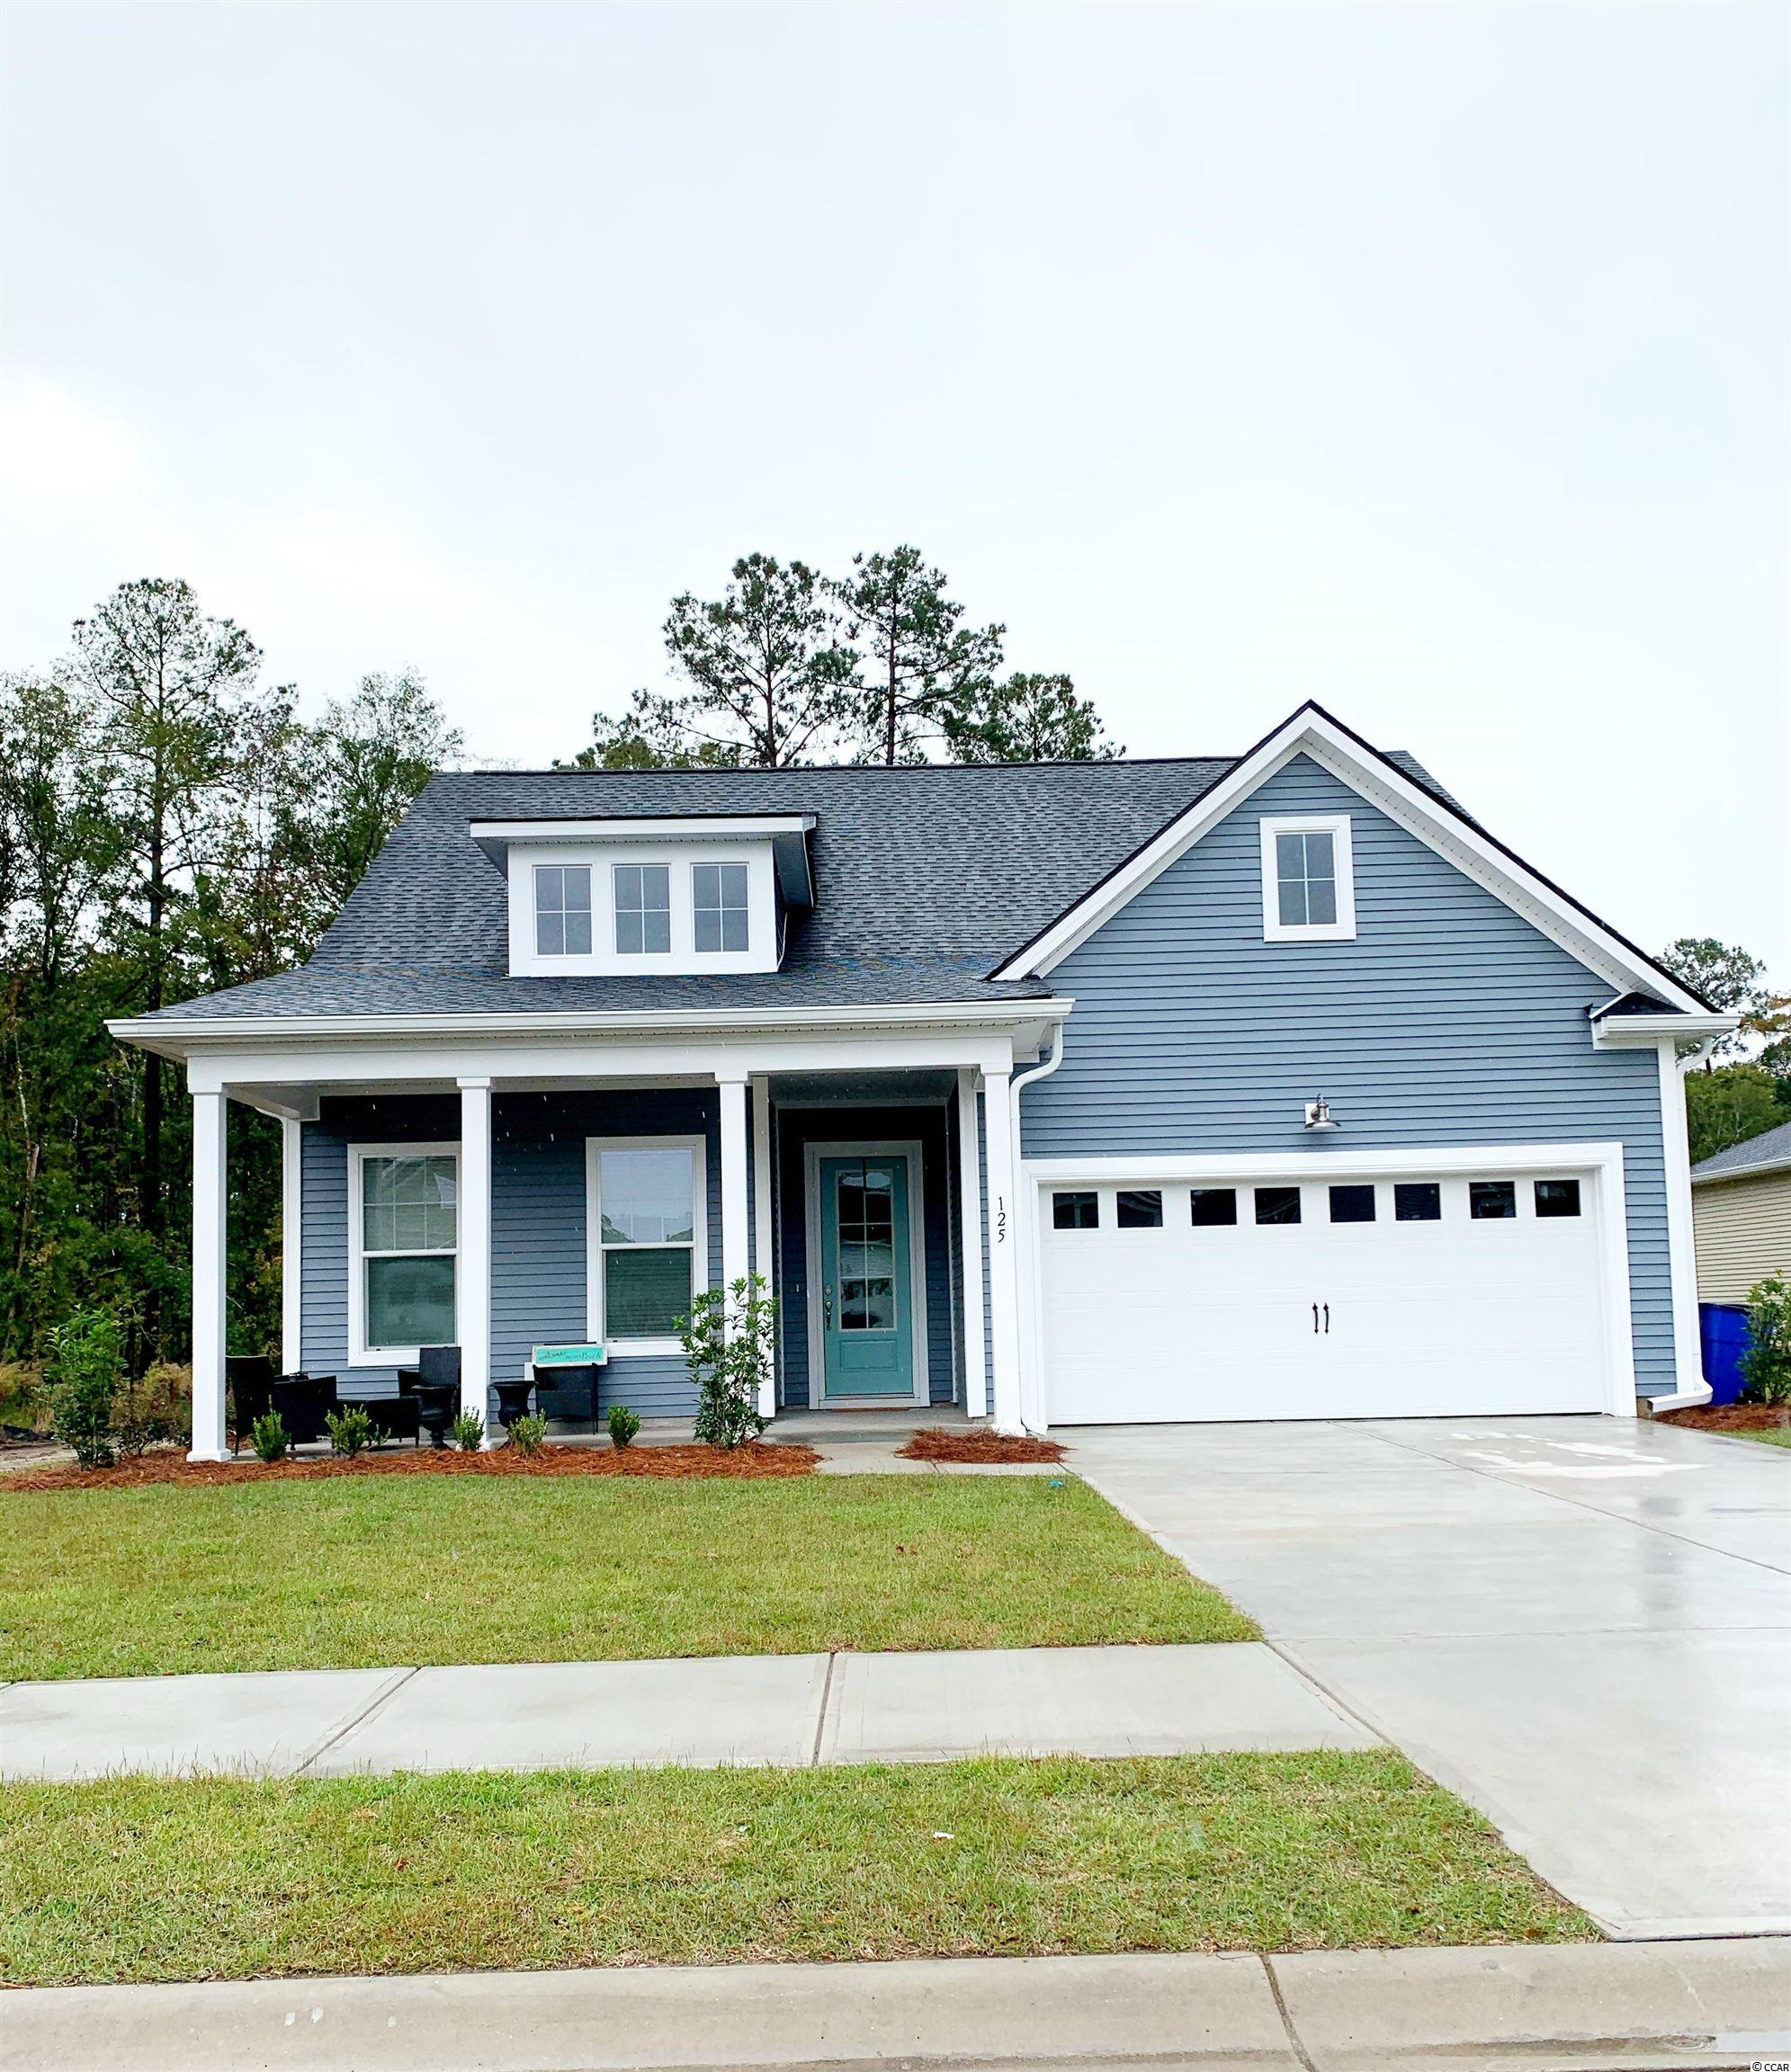 NEW COMMUNITY! Wren Bay boasts over six acres of pristine ponds, 2.5 acres of wetlands, and 2.8 acres of green space. The resort style swimming pool will offer a sundeck, bath house, and outdoor gathering space. Easy access to everything you need right outside your door! We are just 5 miles from the crisp blue waters of the Atlantic Ocean, 3 miles to Marshwalk, and just minutes from retail and grocery shopping.  This Magnolia Plan offers an open concept with soaring 10ft ceilings on first floor, 4 bedrooms, 3 full baths, powder room and 2.5 car garage. Second floor includes 9 ft. ceilings, a large bonus room with closet, fourth bedroom and full bath.  Design features include Gas range, EVP plank flooring in main areas, double door entry into the Master Bath with cultured marble 5ft shower and so much more!  The garage is a wood workers dream with a tandem garage, that can be used as a workshop, golf cart bay, or extra storage! Security System with first 6 mos. of monitoring free, tankless hot water heater.